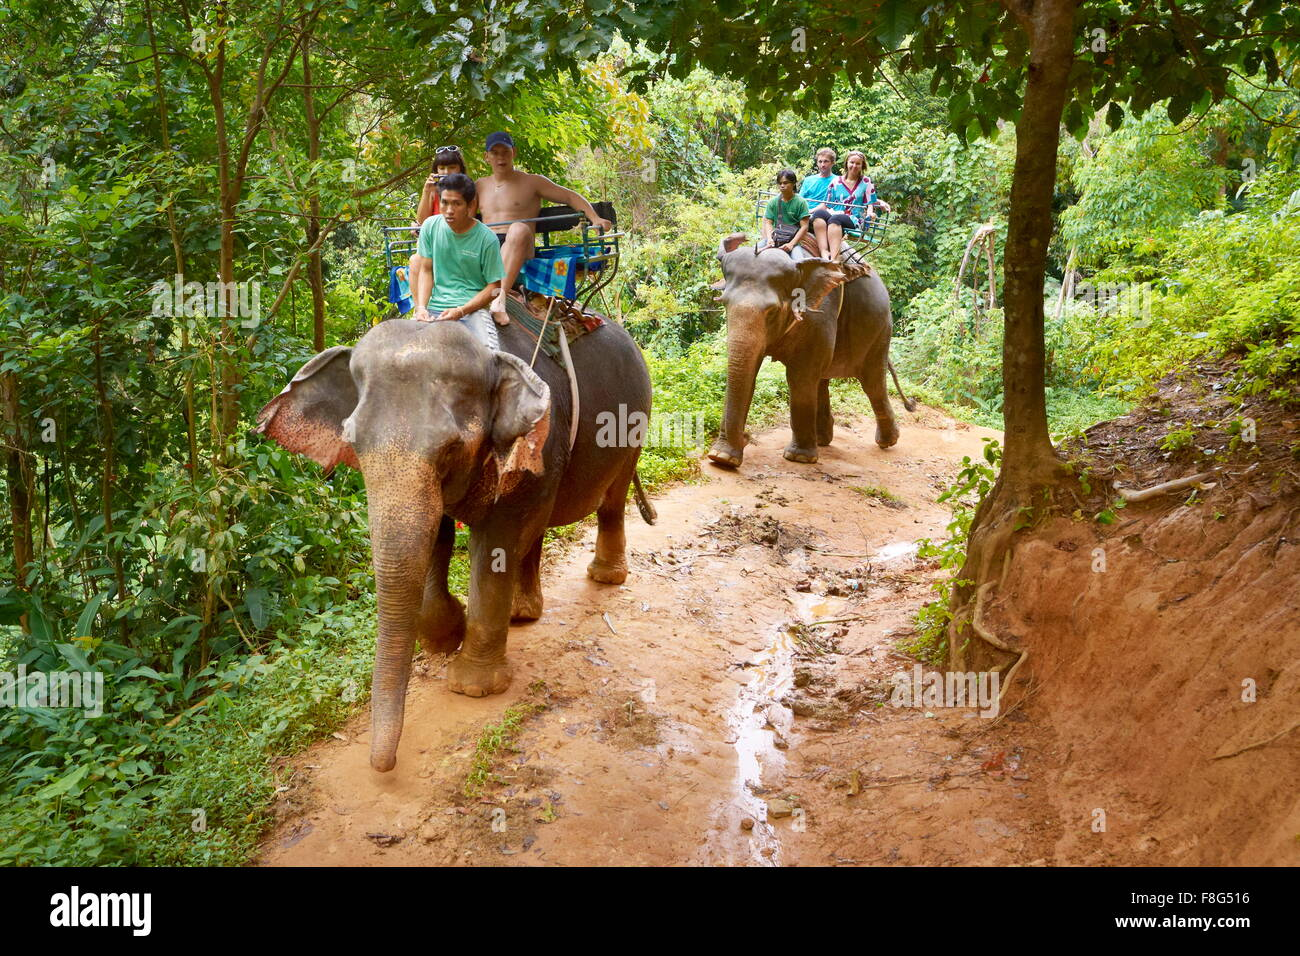 Khao Lak National Park, elephant riding in tropical forest, Thailand - Stock Image